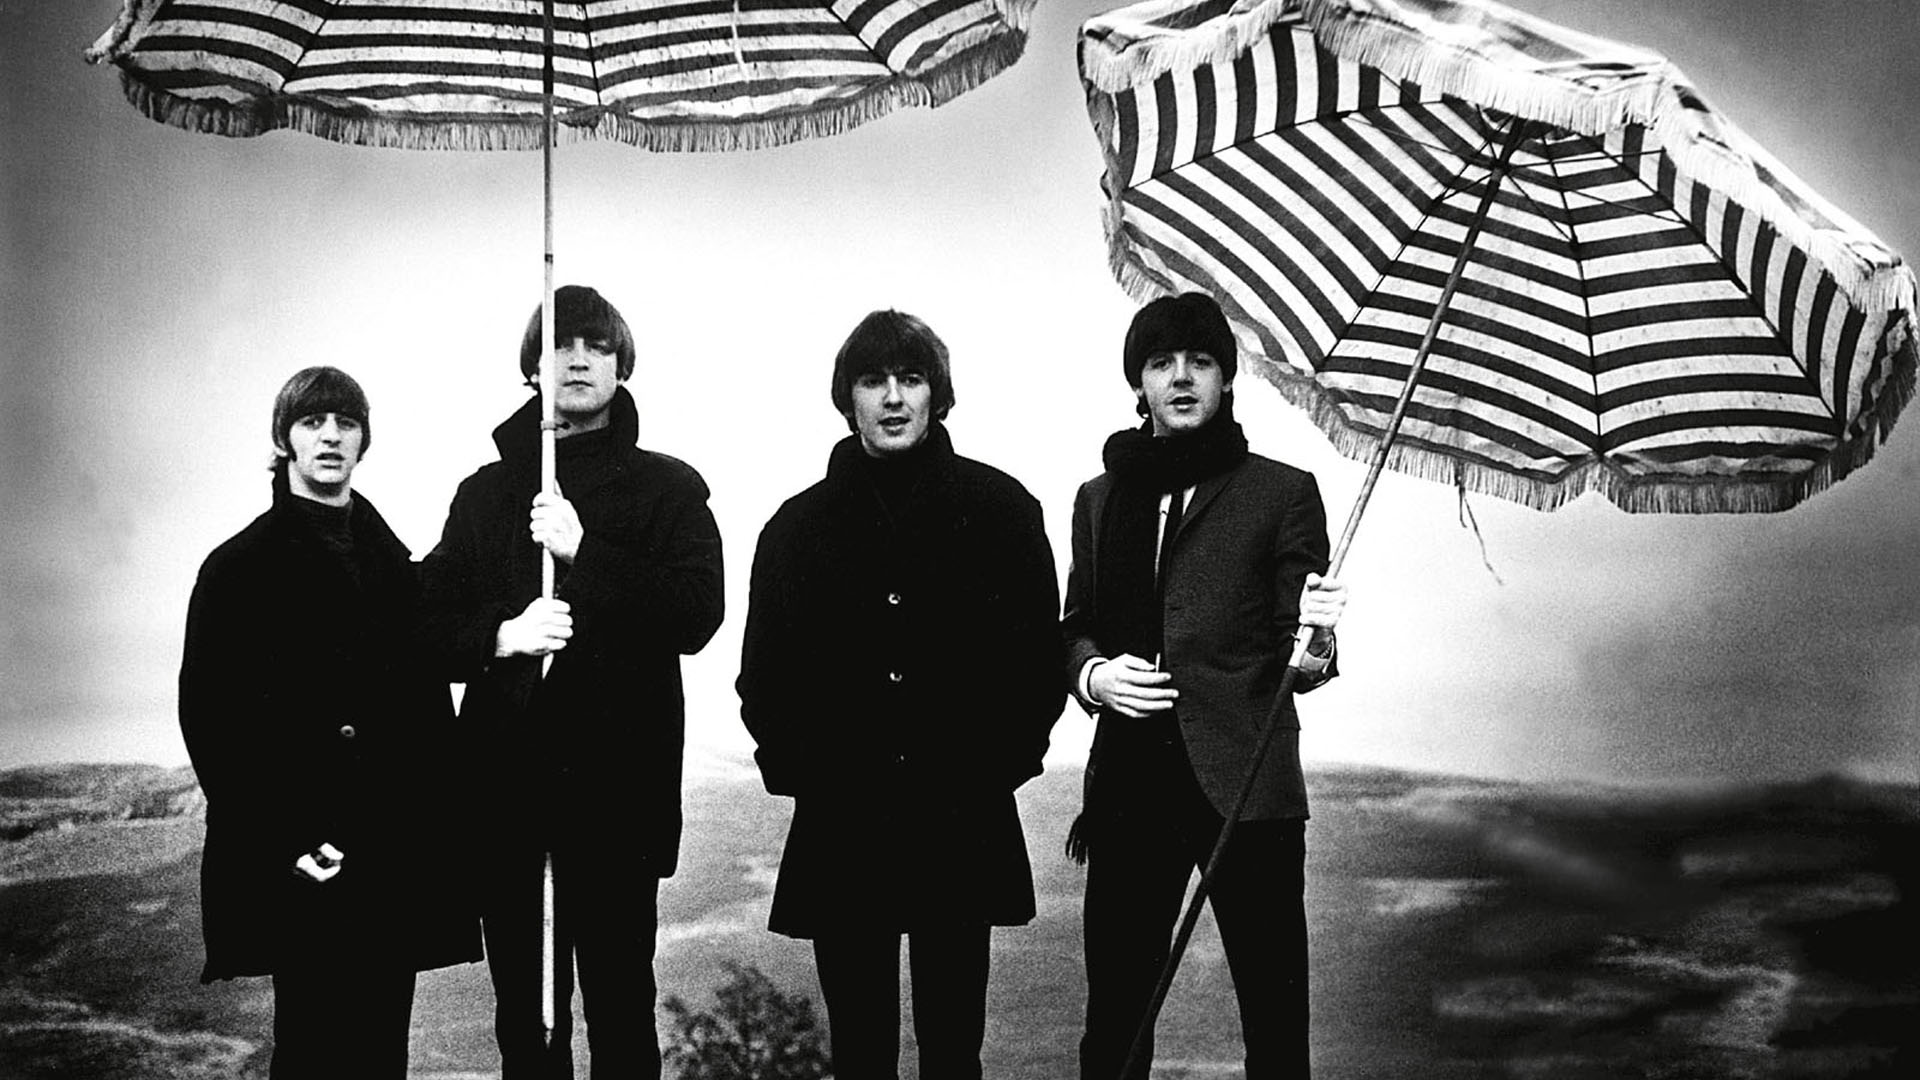 Mac IMac The Beatles Wallpapers HD Desktop Backgrounds 1920x1080